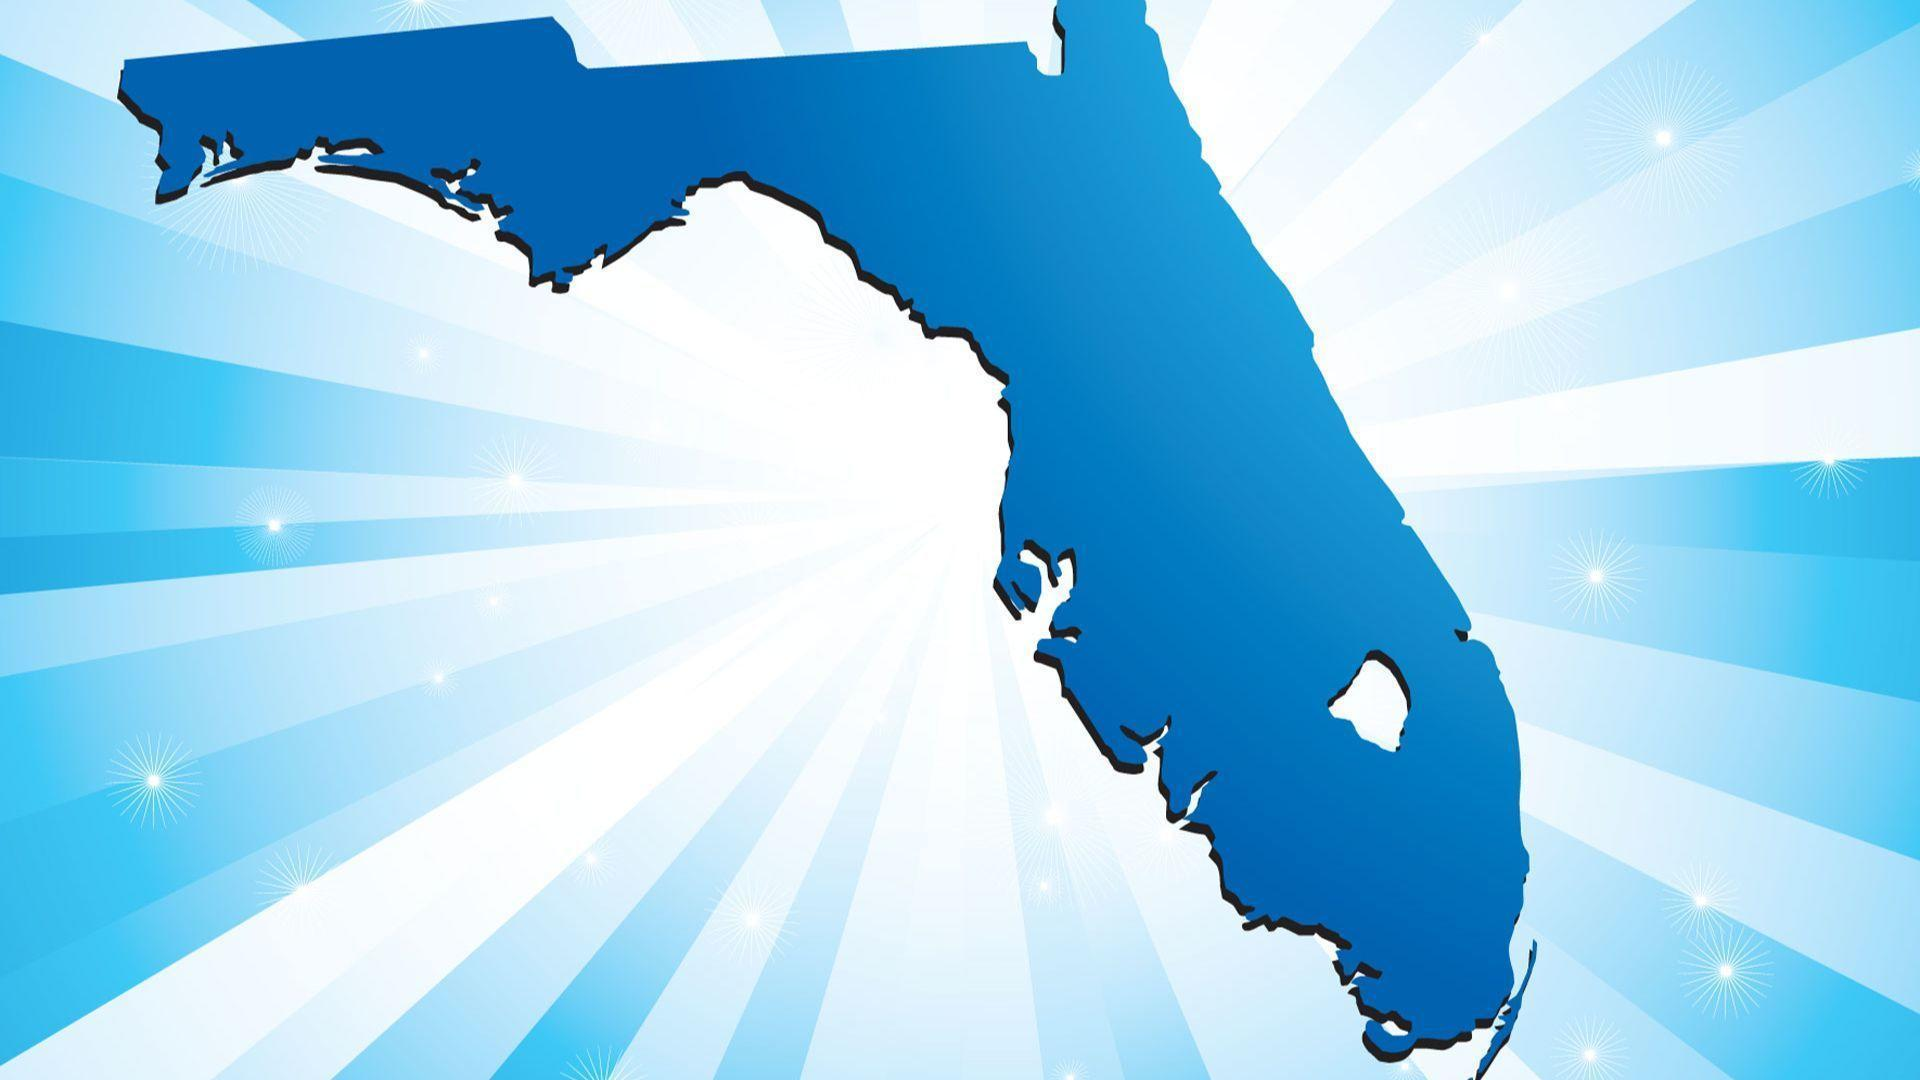 Central Florida won't feel effect from hotel tax law change